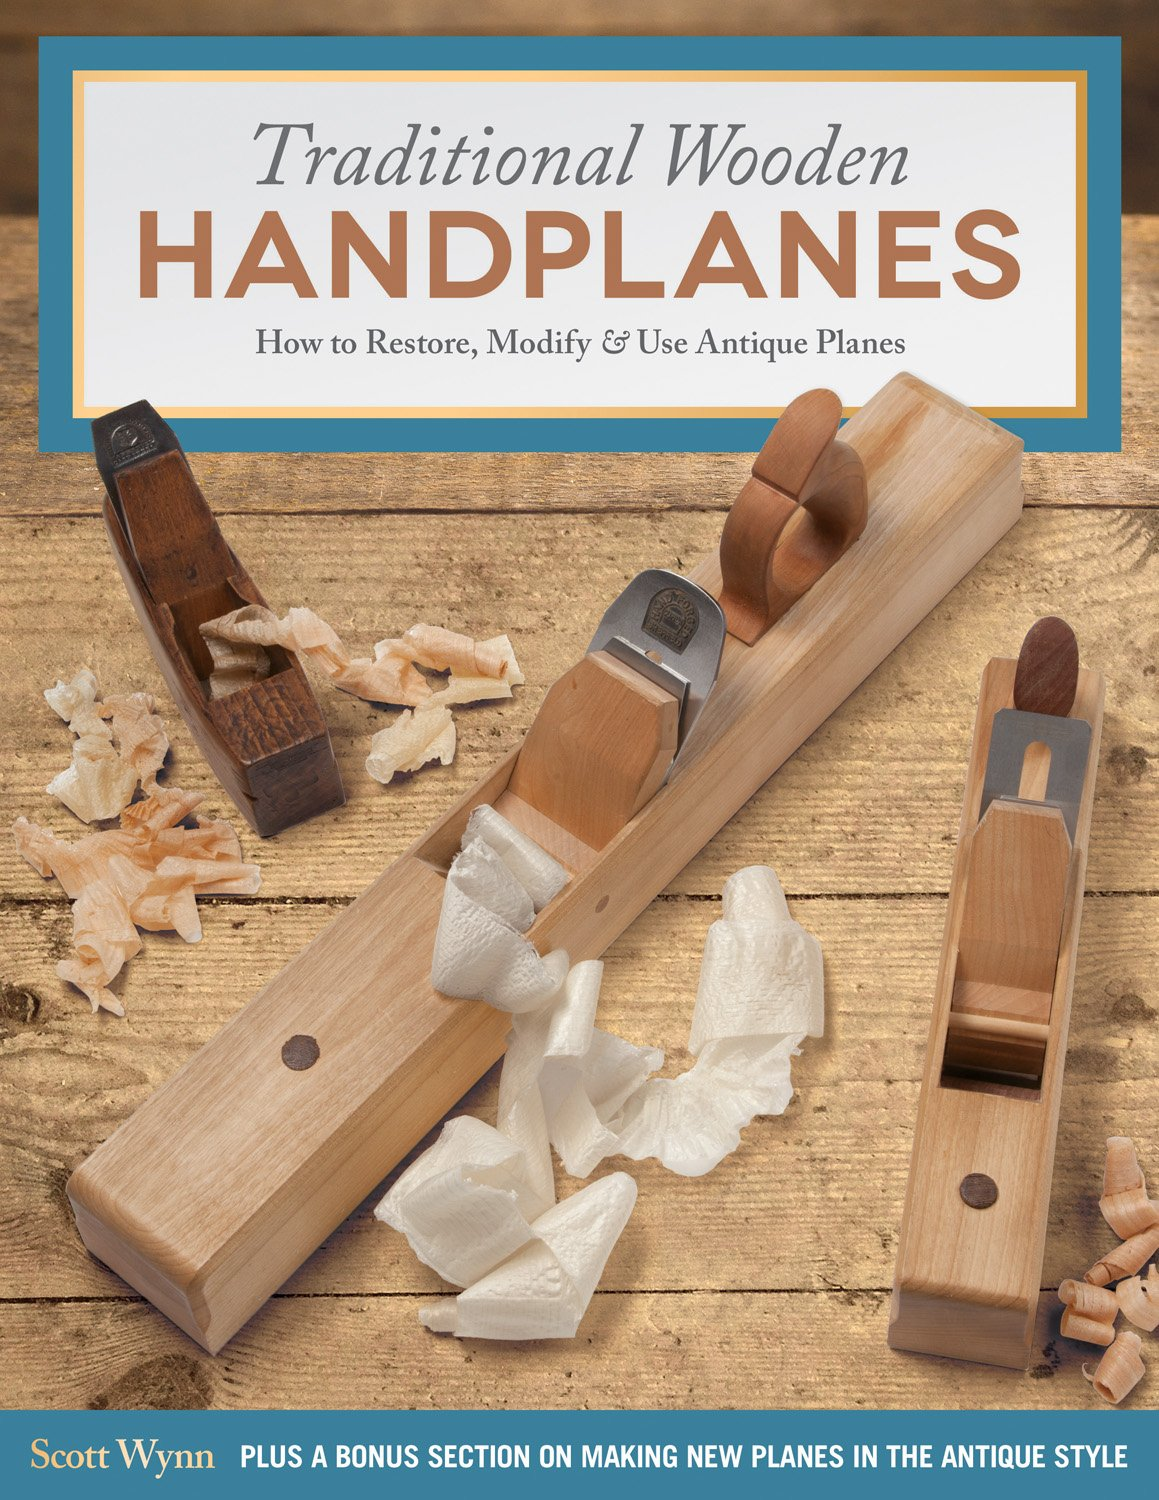 Traditional Wooden Handplanes: How to Restore, Modify & Use Antique Planes, Plus a Bonus Section on Making New Planes in the Antique Style (Fox Chapel Publishing) Over 200 Photos & Illustrations